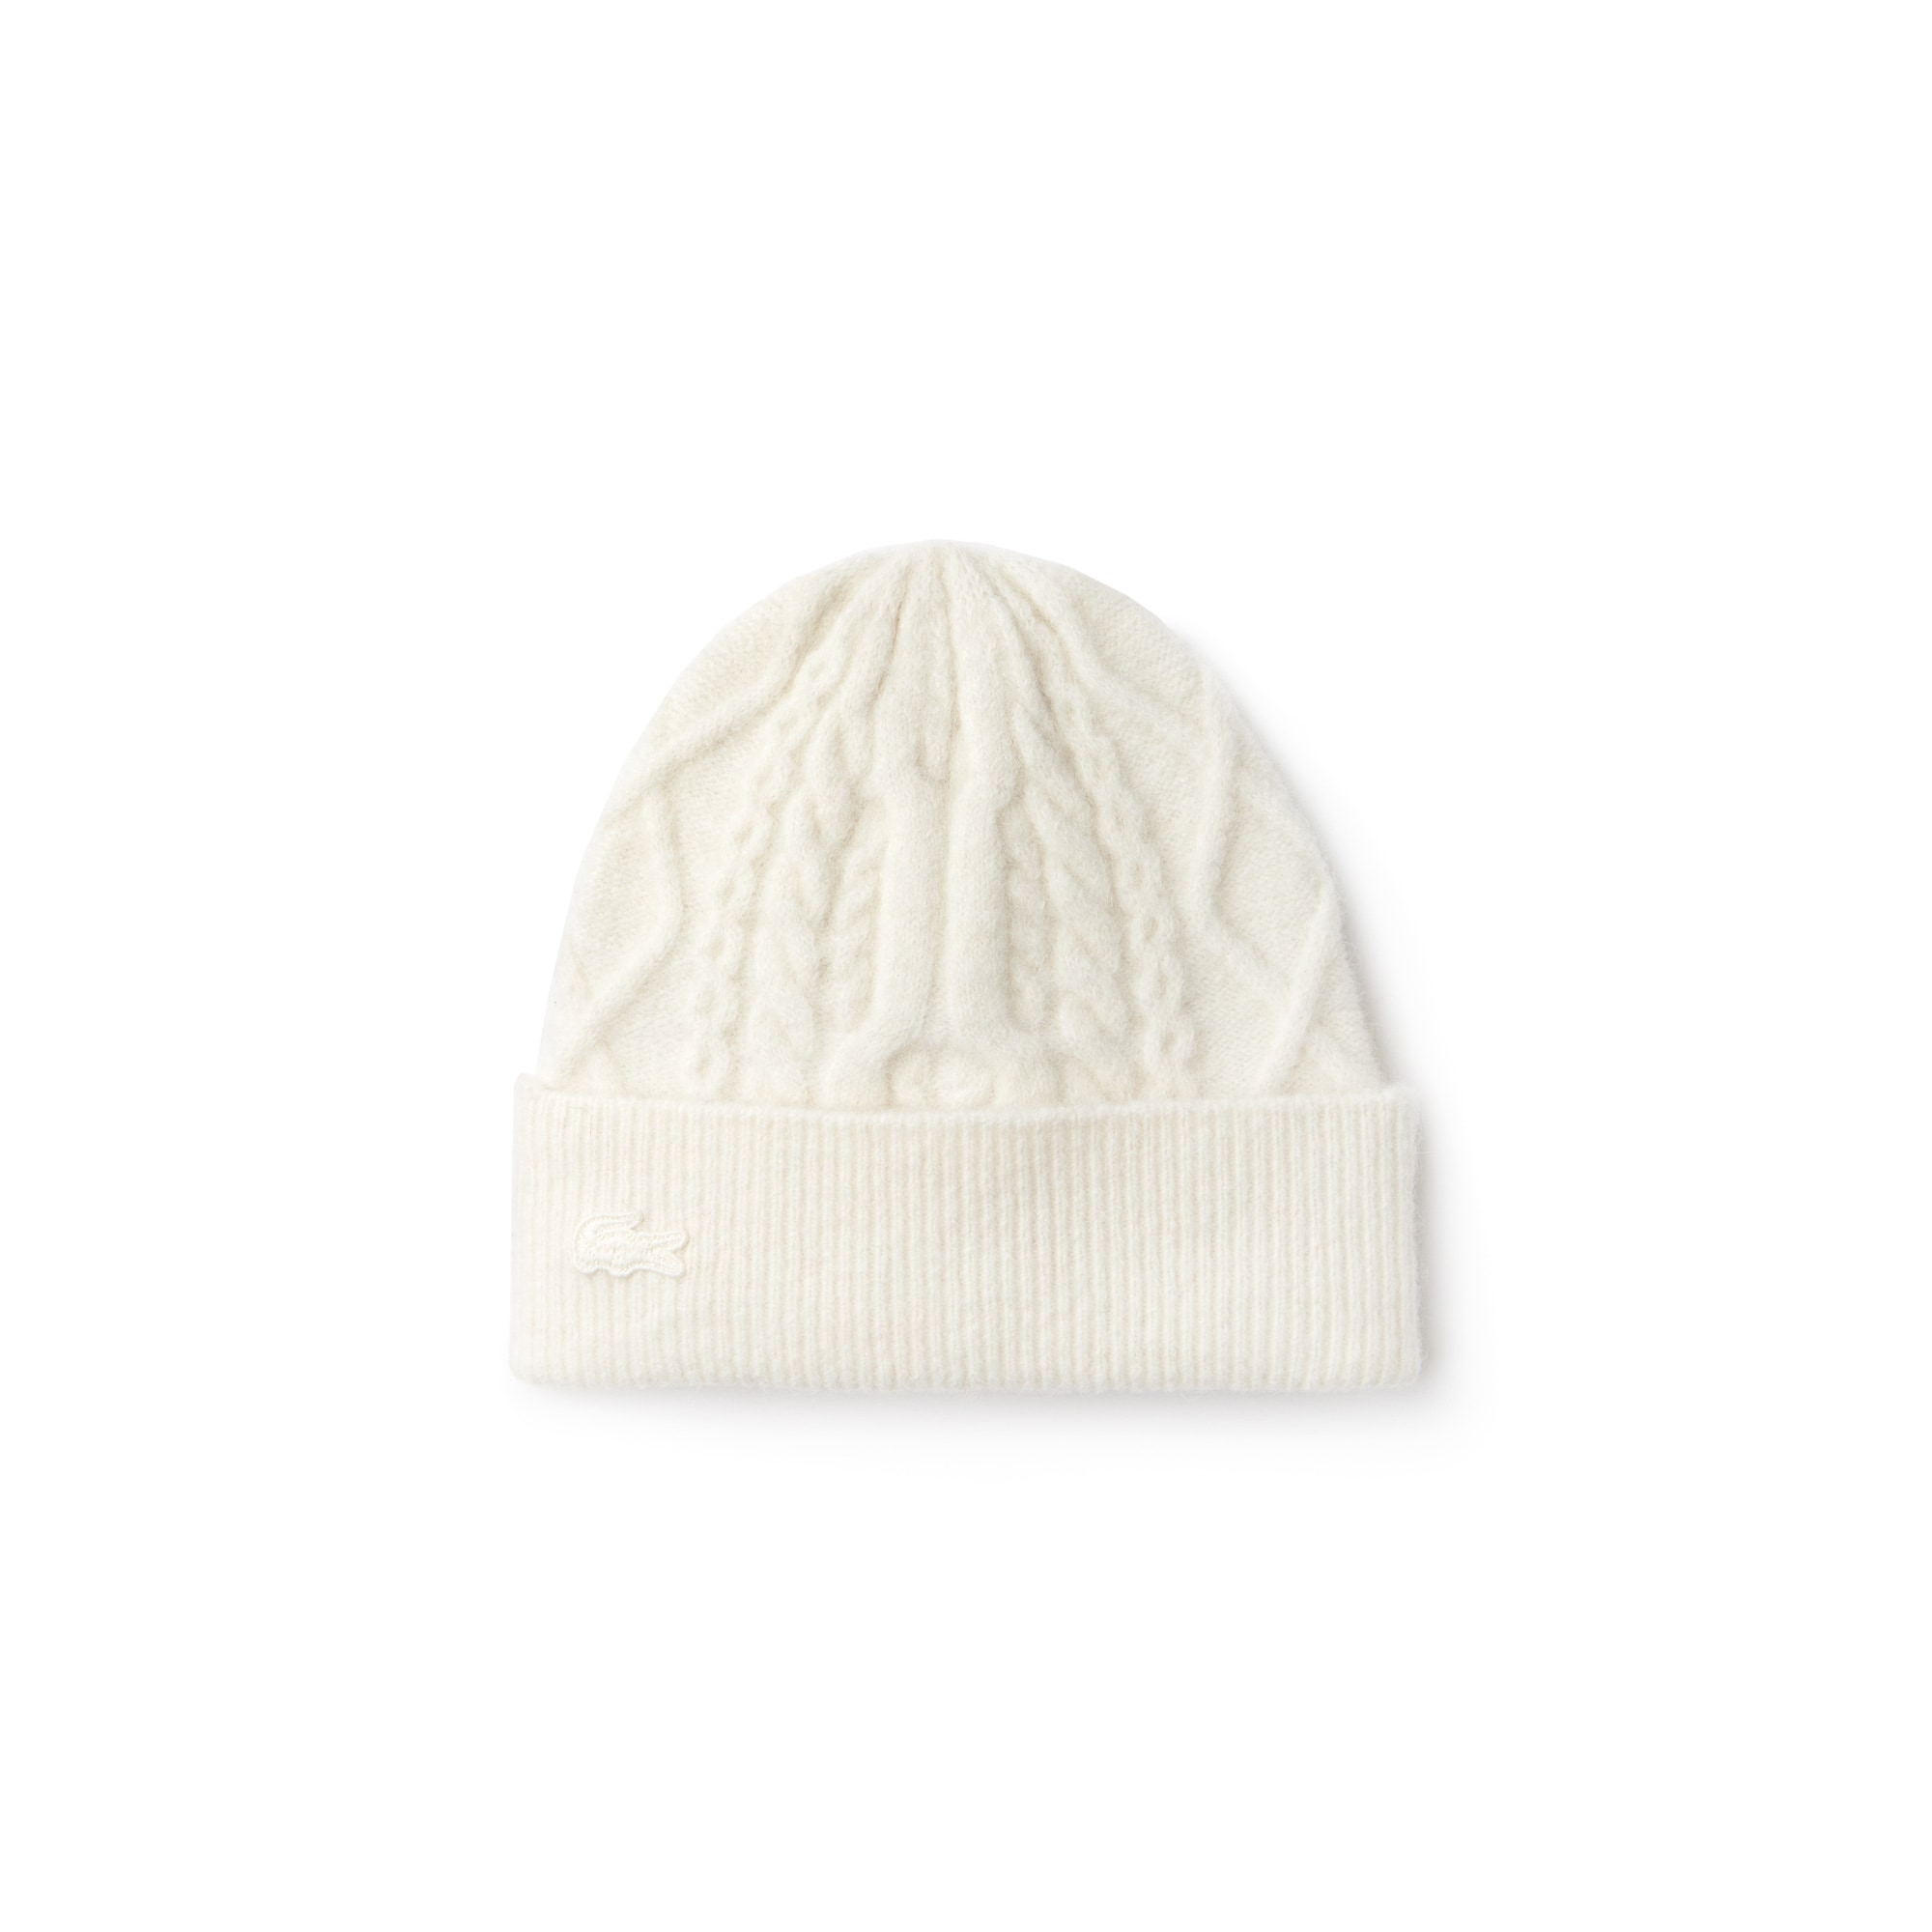 Women's Turned Edge Alpaga And Wool Cable Knit Beanie